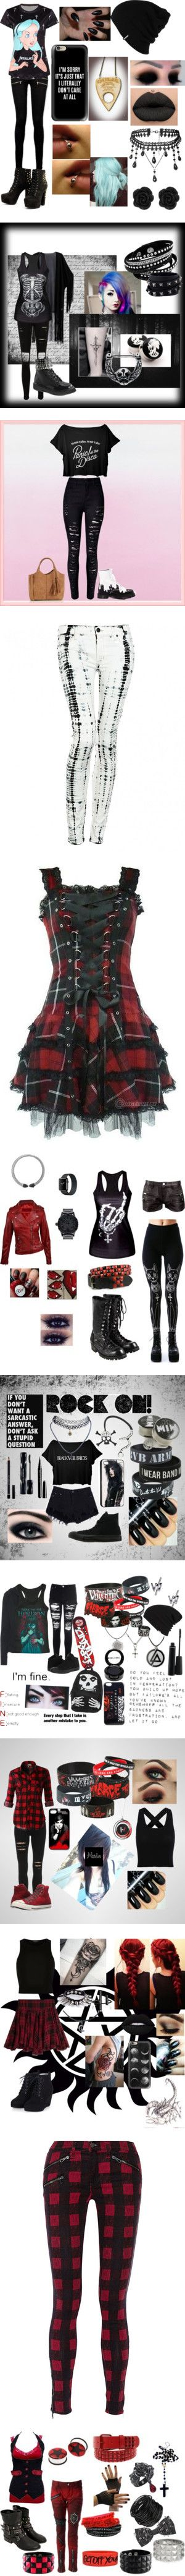 Emo/Goth/Punk Outfits by vampirekitty34 on Polyvore featuring Patagonia, Paige Denim, Casetify, Demonia, Valentino, WithChic, Dr. Martens, Oasis, women's fashion and jeans